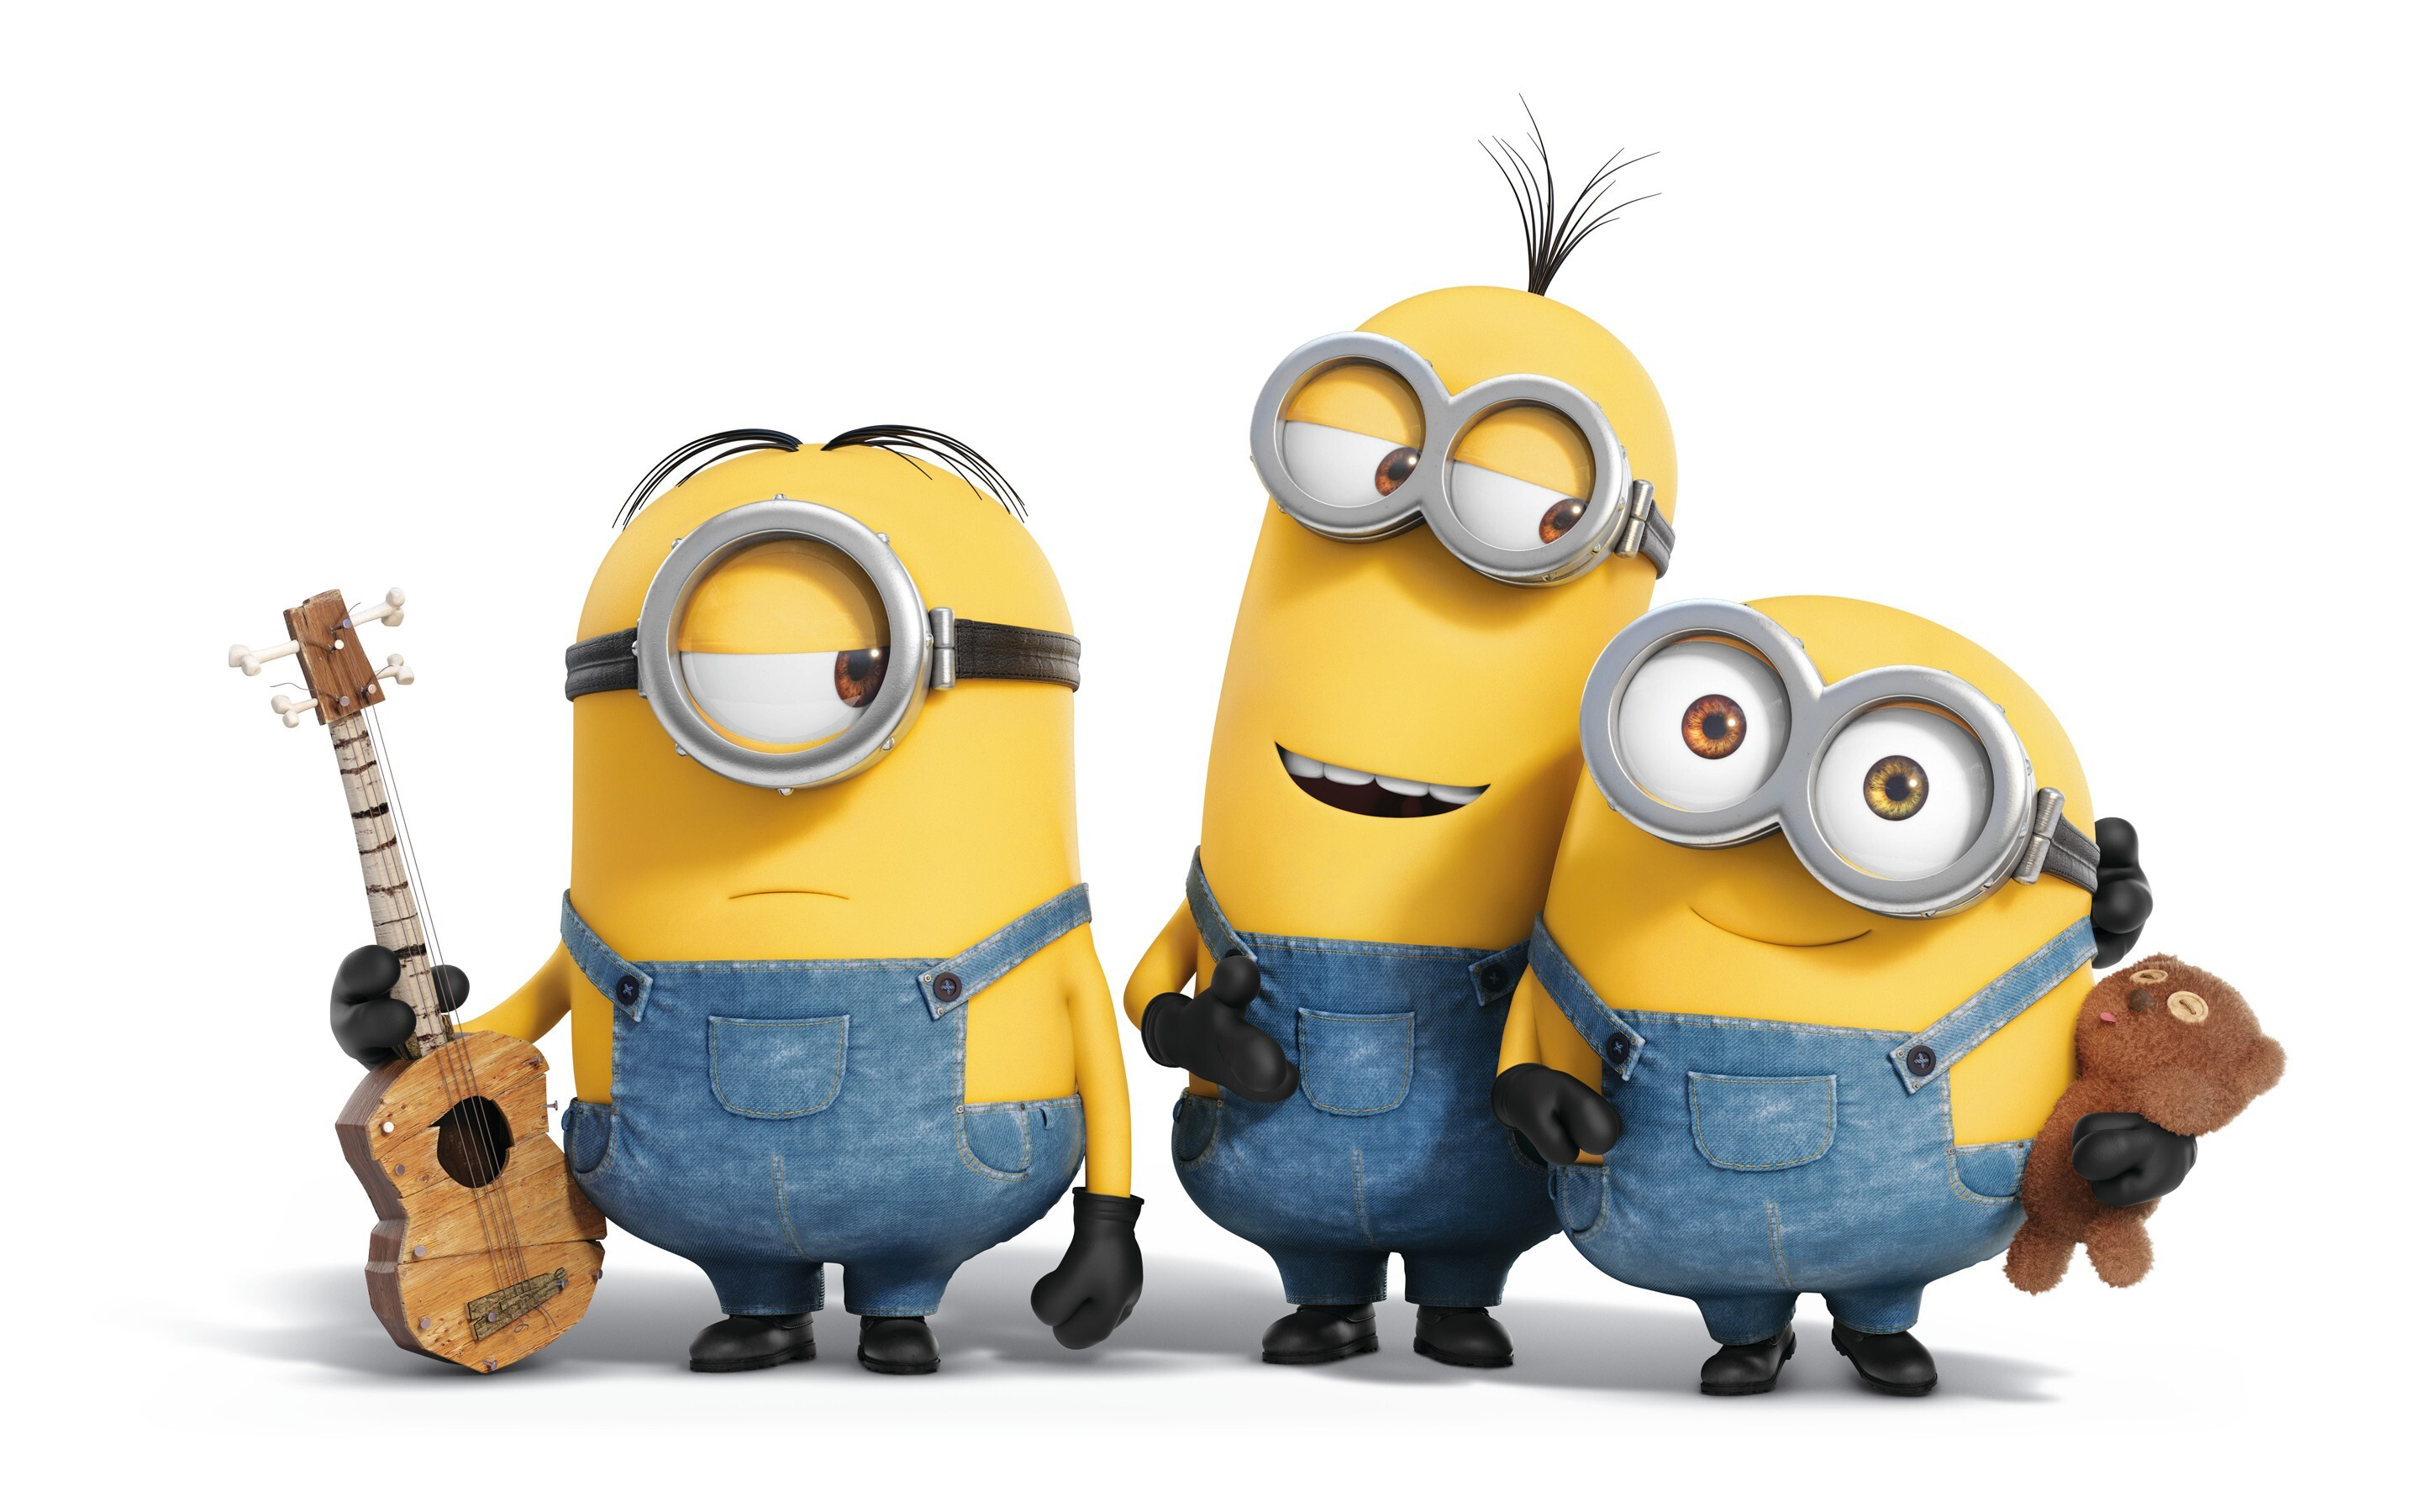 2880x1800 Minions Movie Macbook Pro Retina HD 4k Wallpapers,